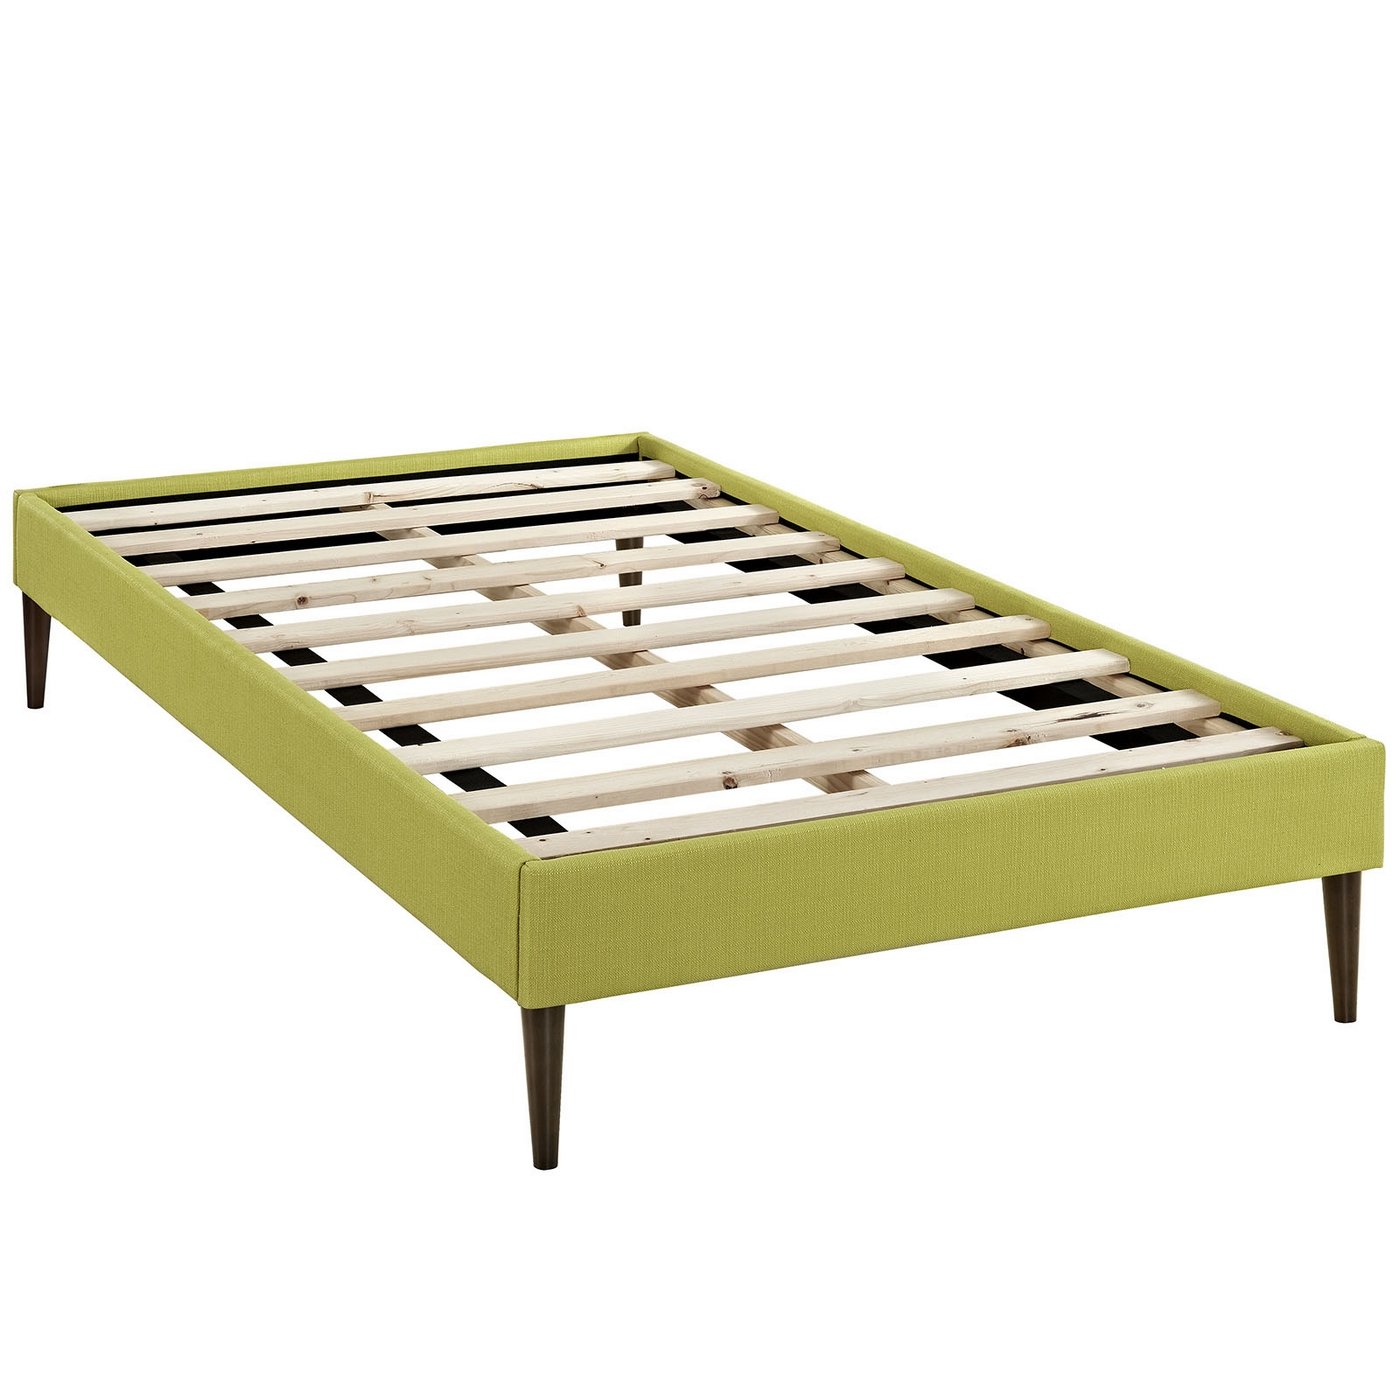 Sherry upholstered fabric twin platform bed frame wheatgrass for Upholstered platform bed frame